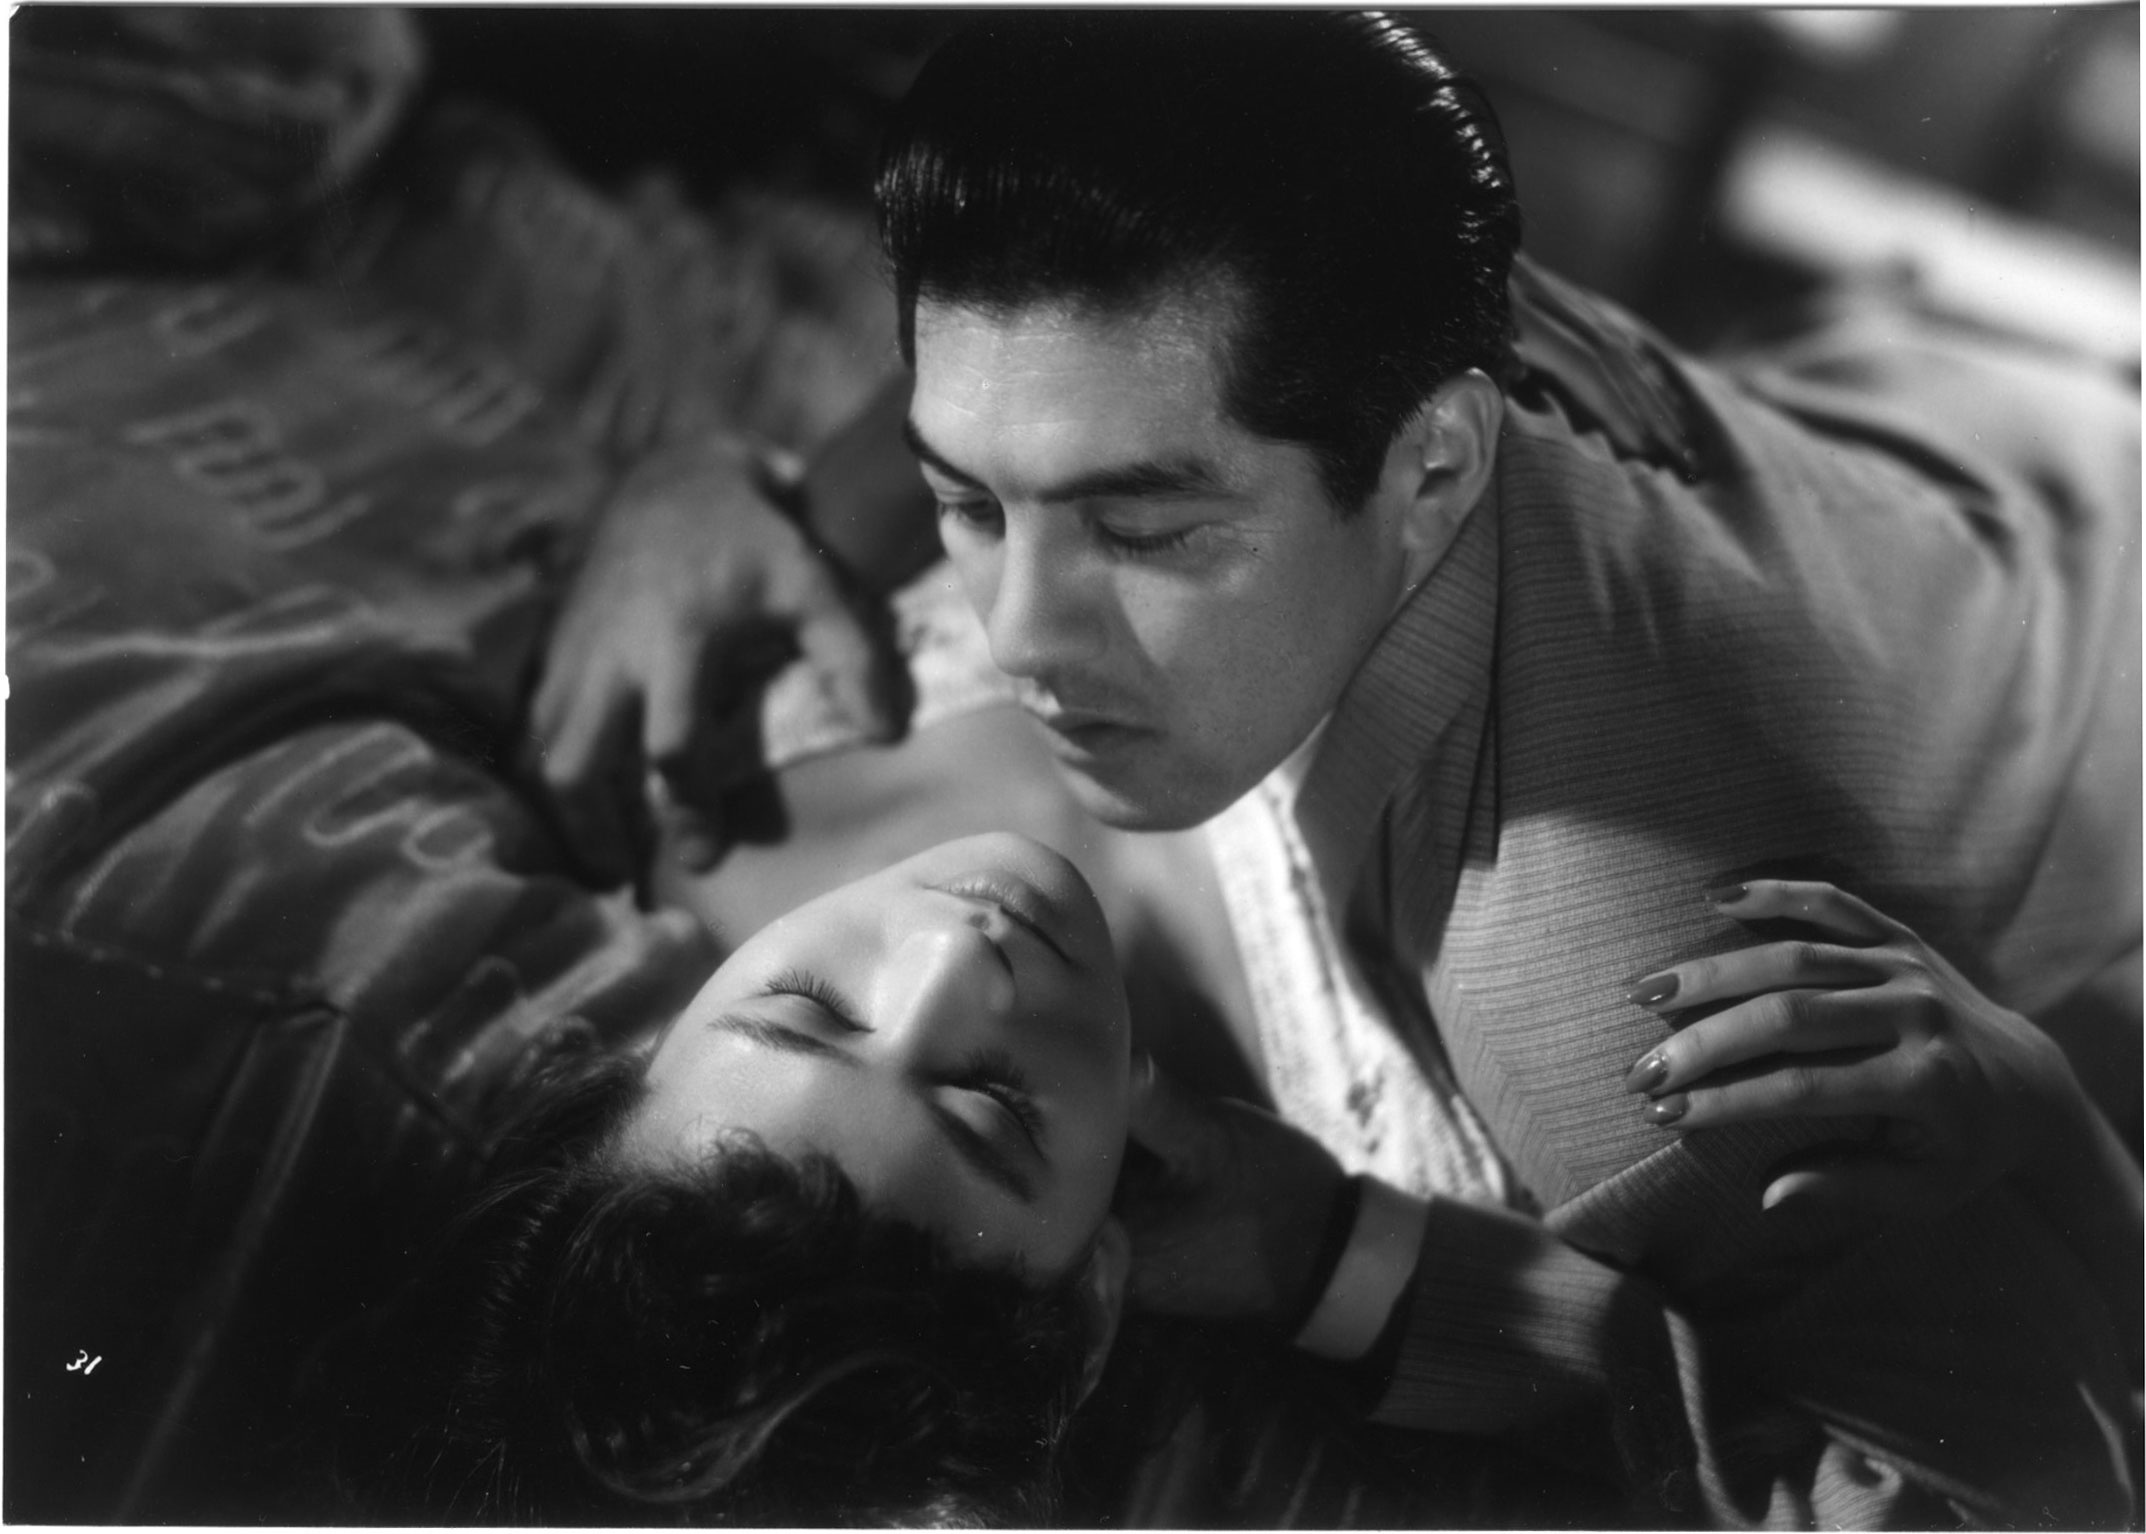 A Hole of My Own Making. 1955. Japan. Directed by Tomu Uchida. Courtesy of National Film Center, The National Museum of Modern Art, Tokyo